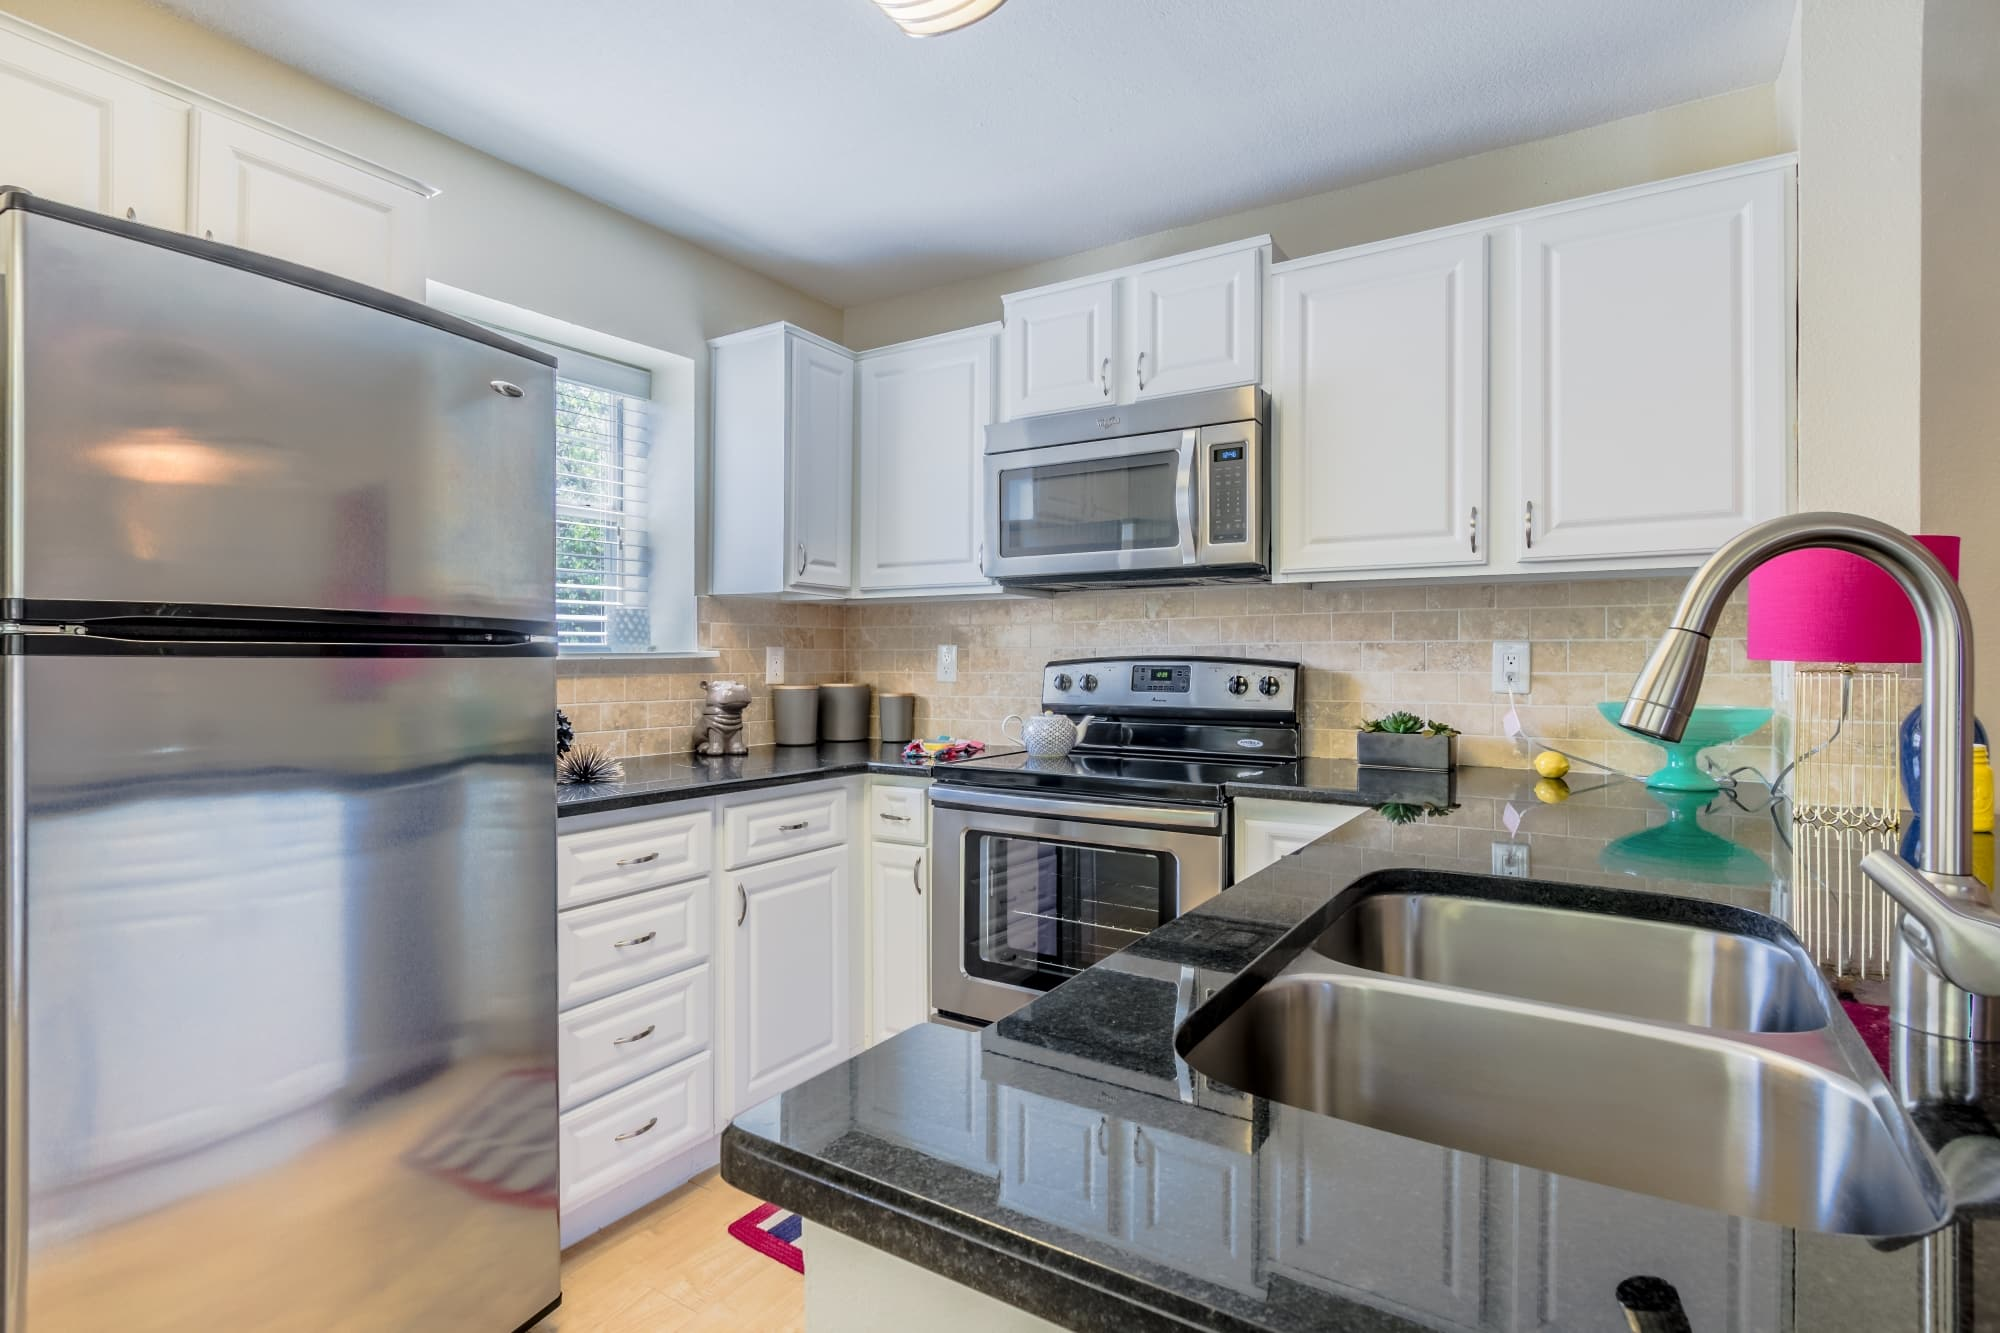 Stainless Steel Energy-Efficient Appliances